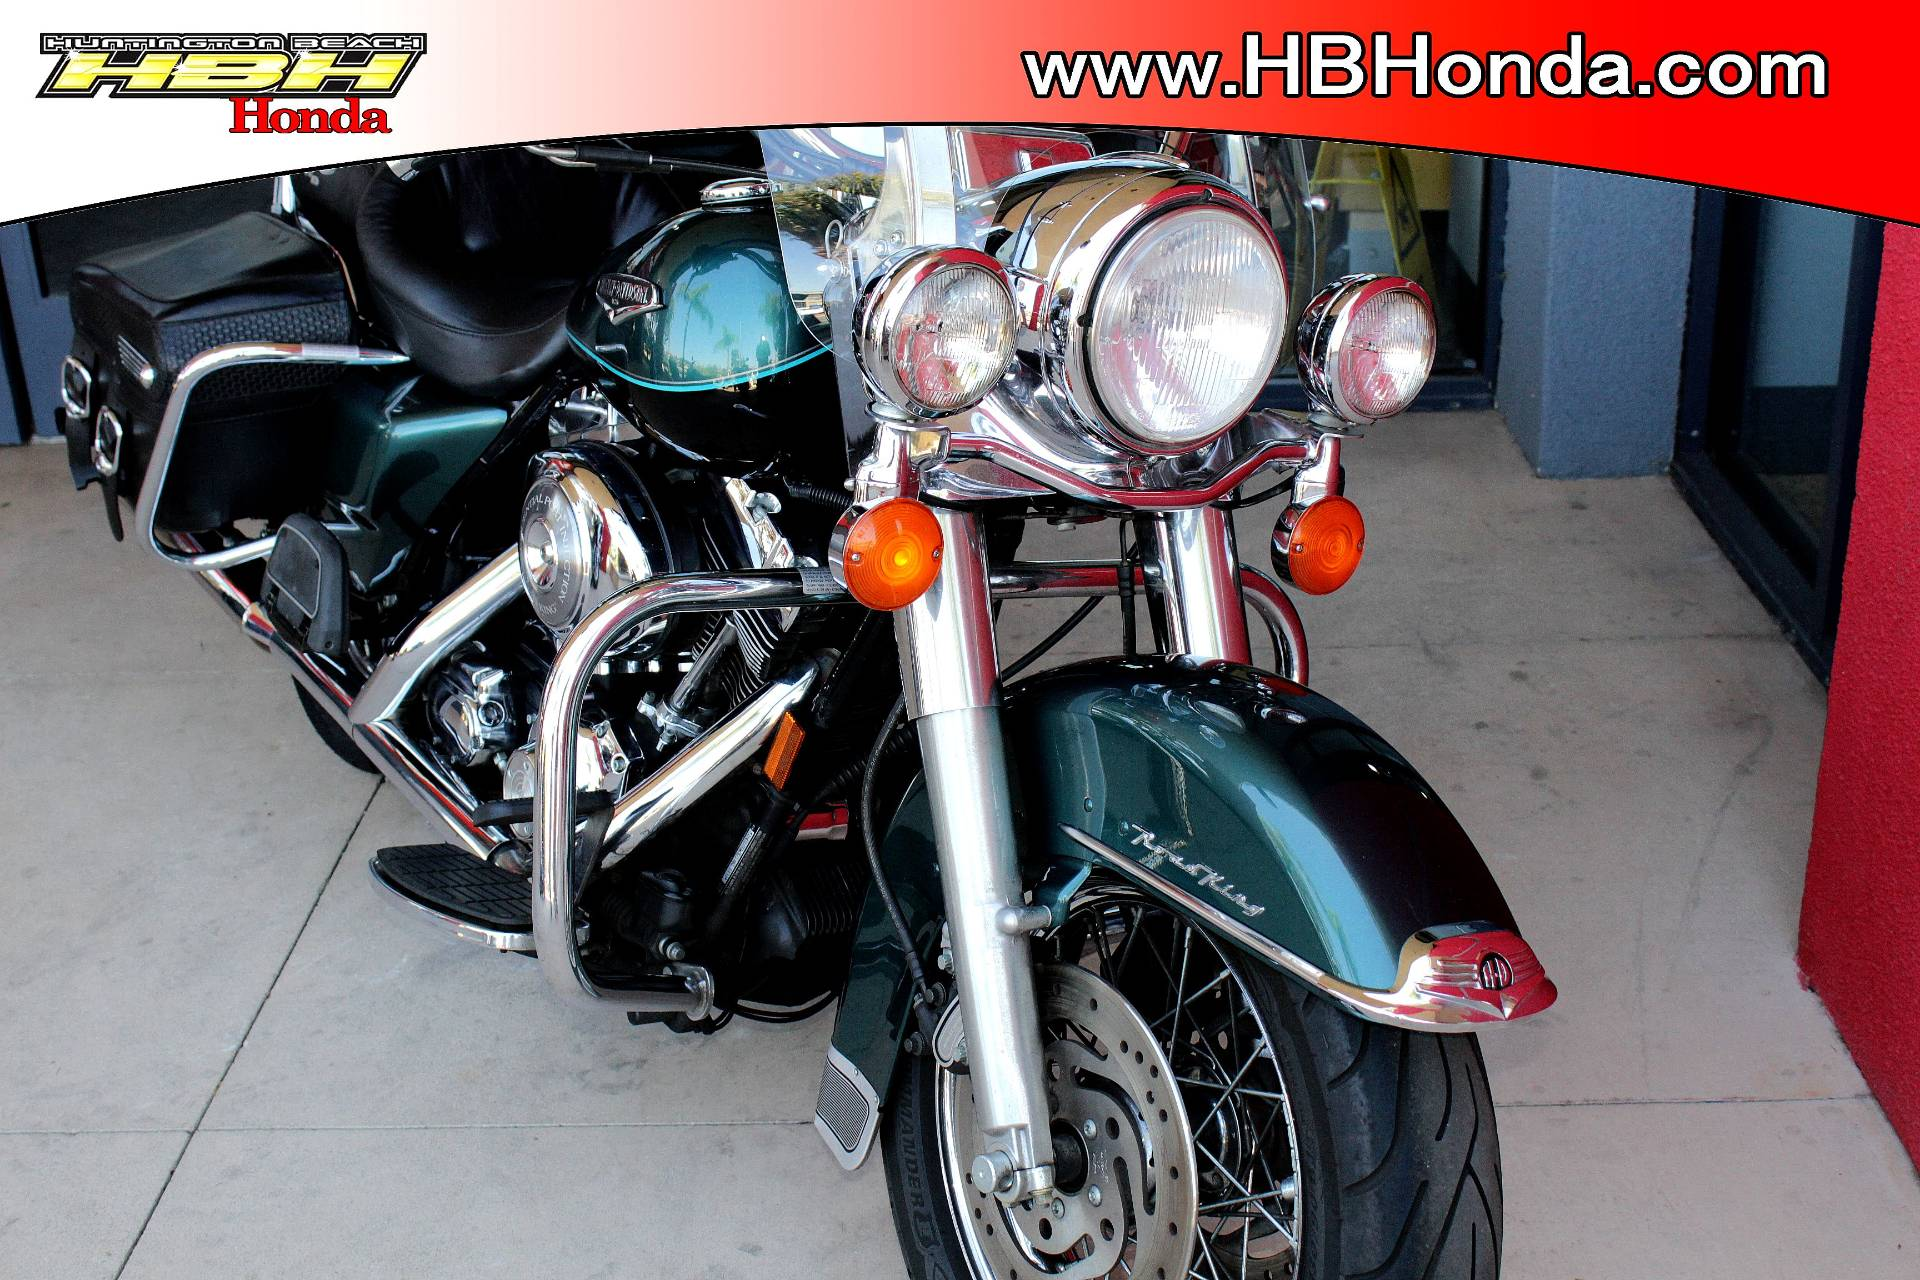 2001 Harley-Davidson FLHRCI Road King® Classic in Huntington Beach, California